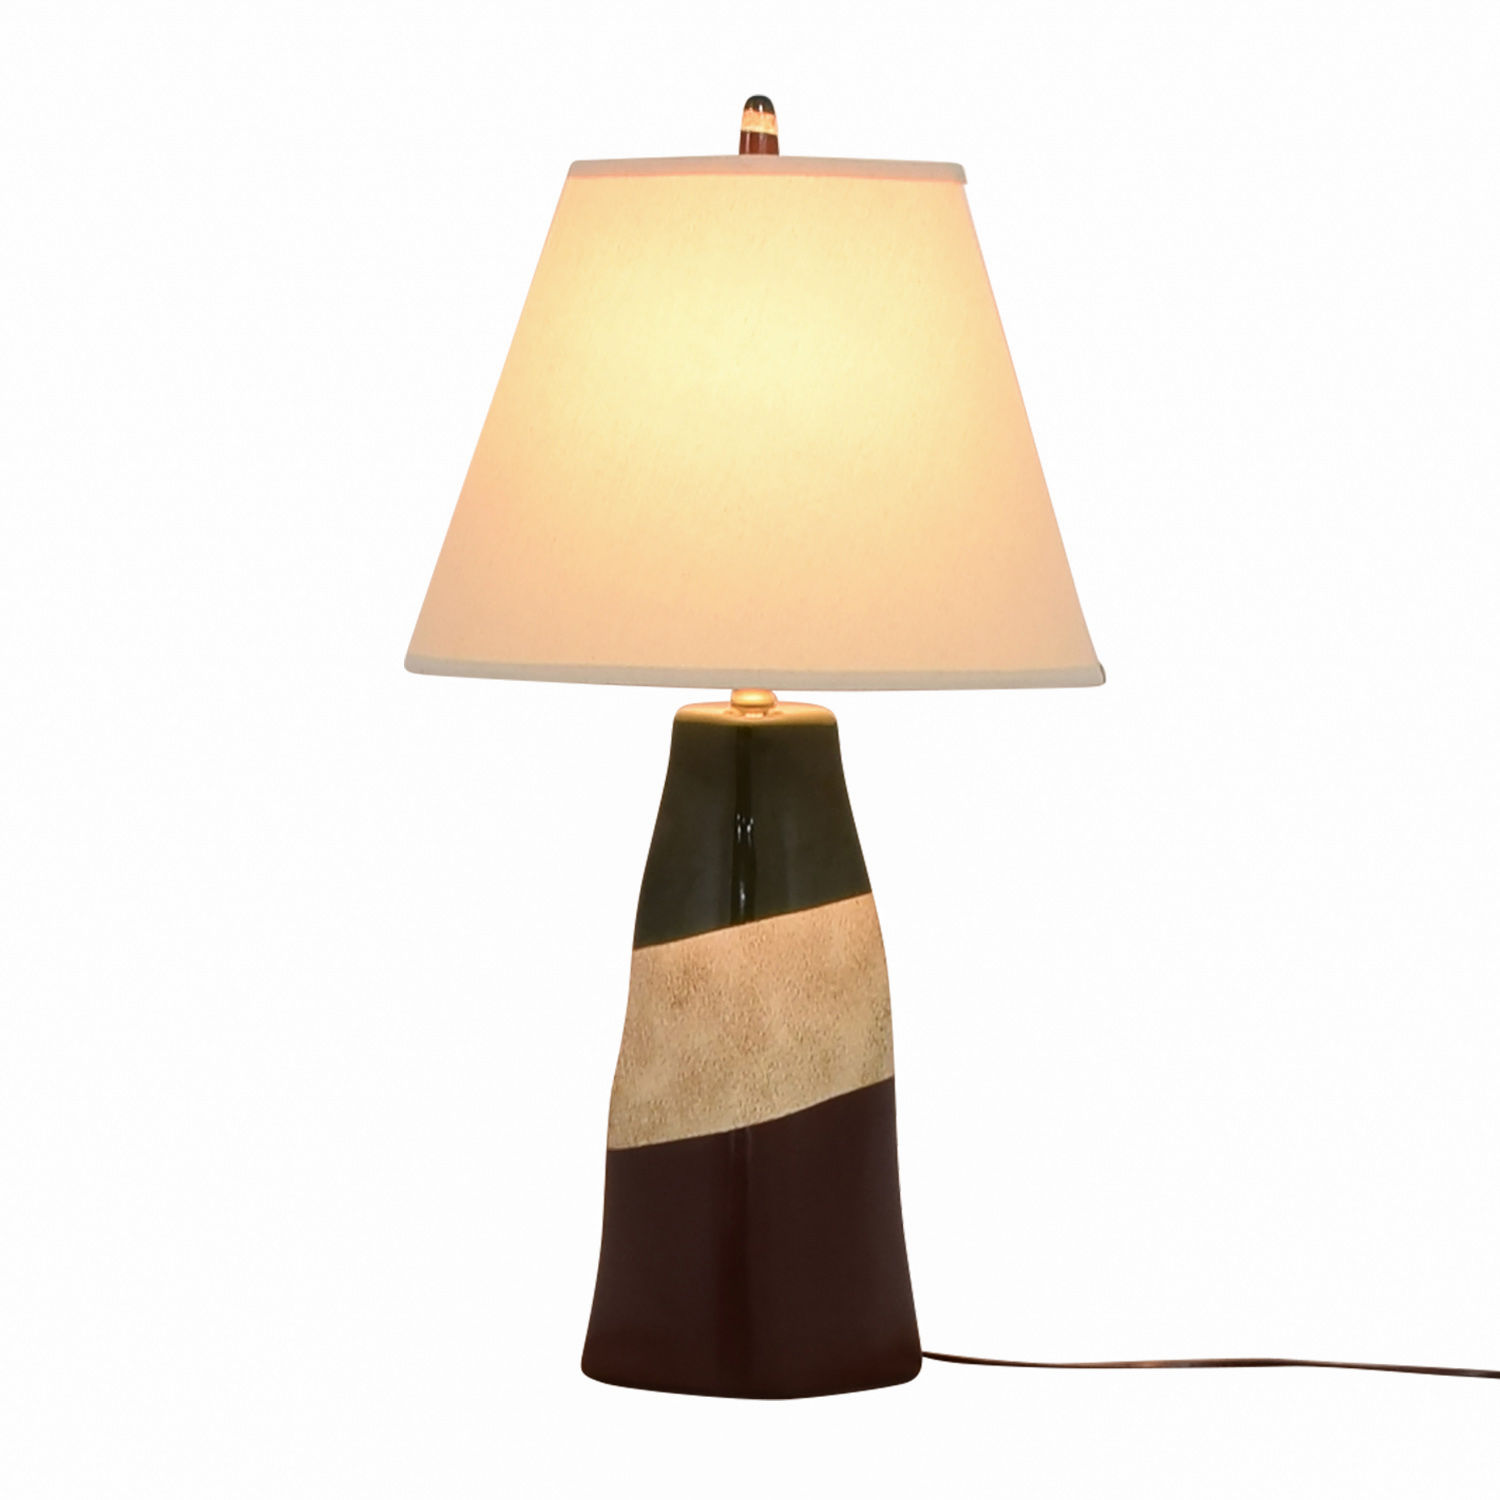 Brown Green and Beige Ceramic Table Lamp sale